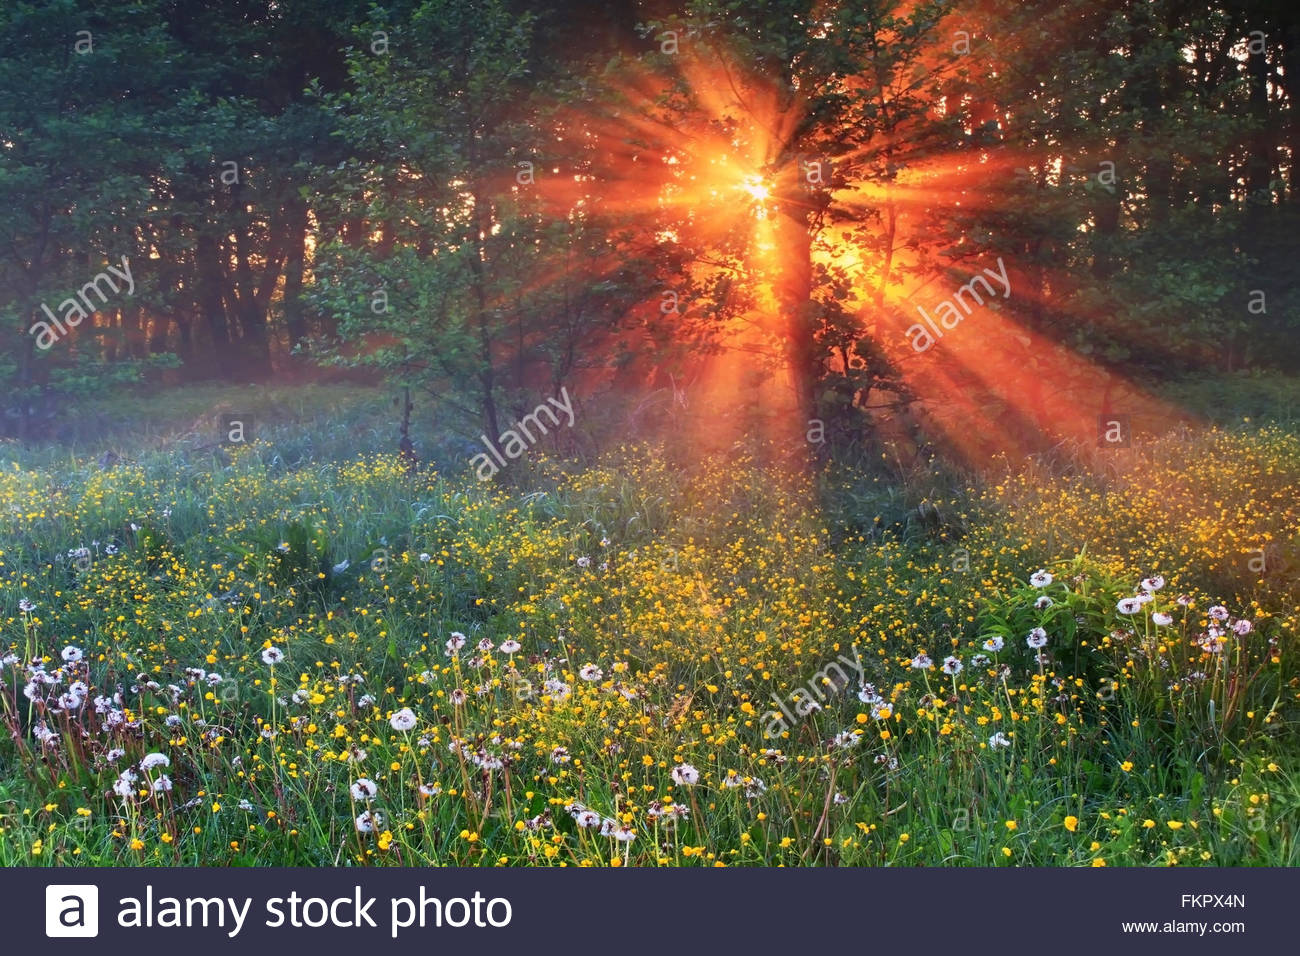 Amazing forest with blooming dandelions in the morning sun - Stock Image